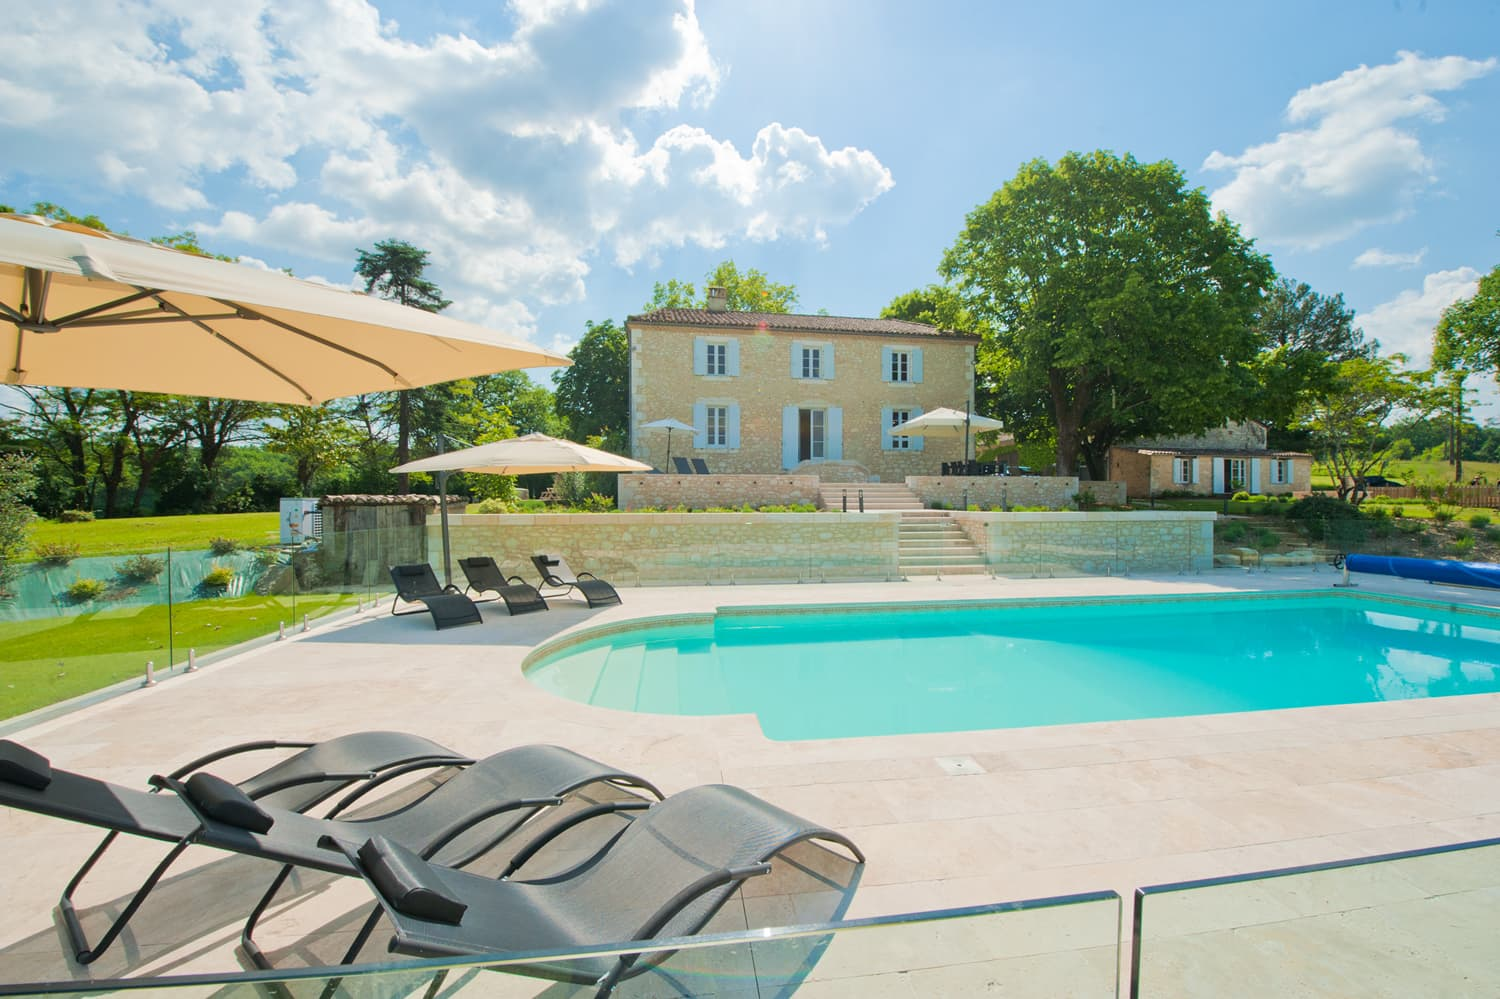 Dordogne rental home with private, heated pool in Dordogne